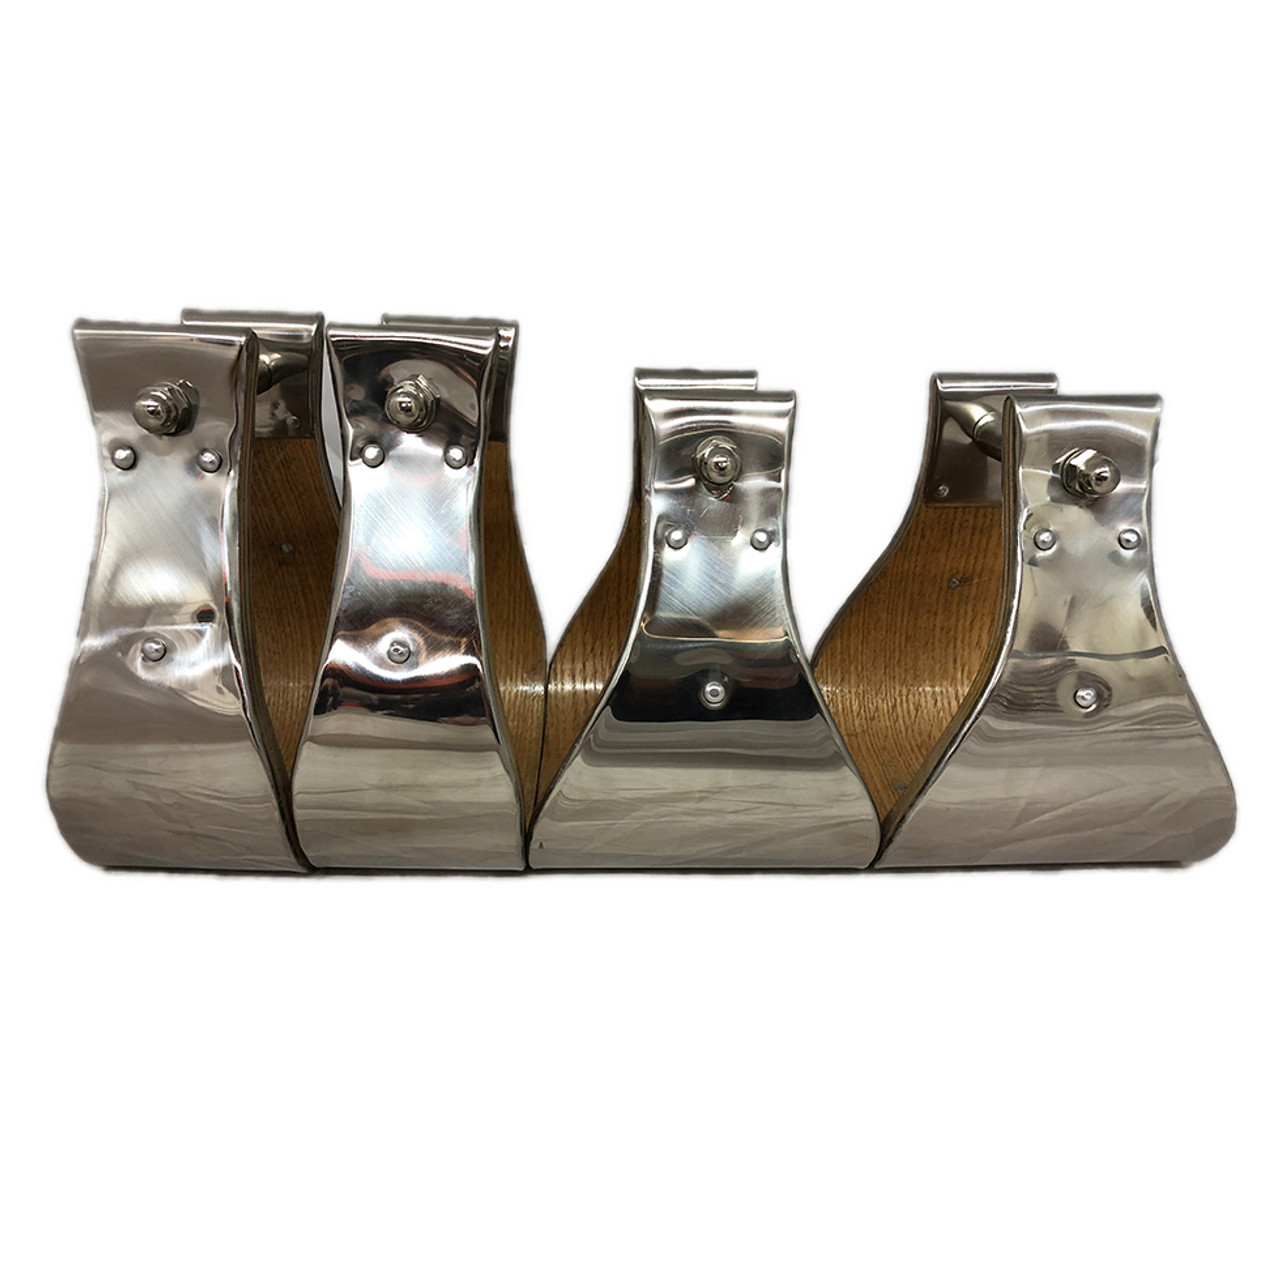 Stainless steel clad Monel stirrups. 3 & 5 inch sizes.